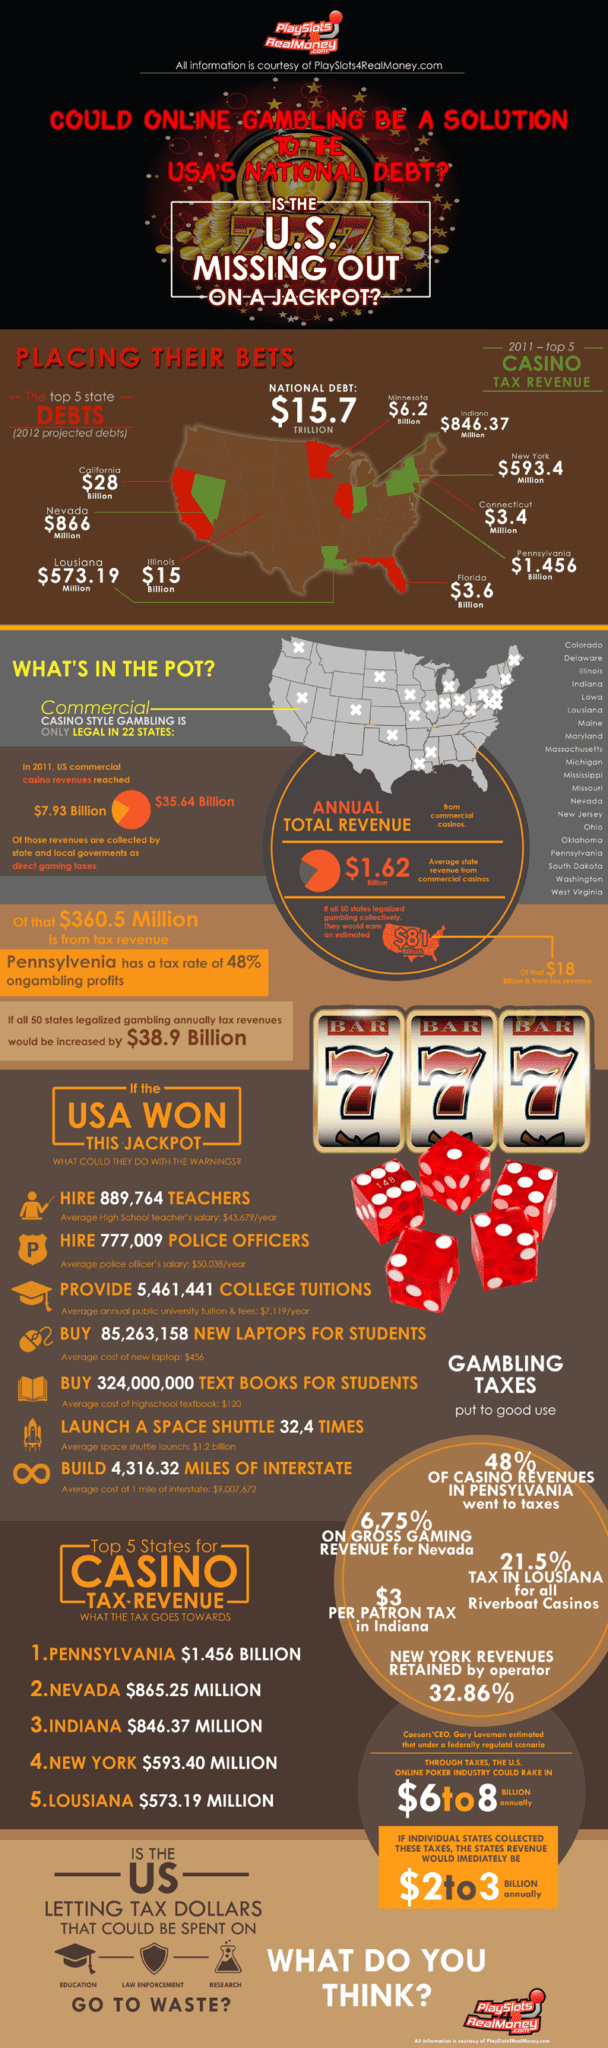 usa online casinos